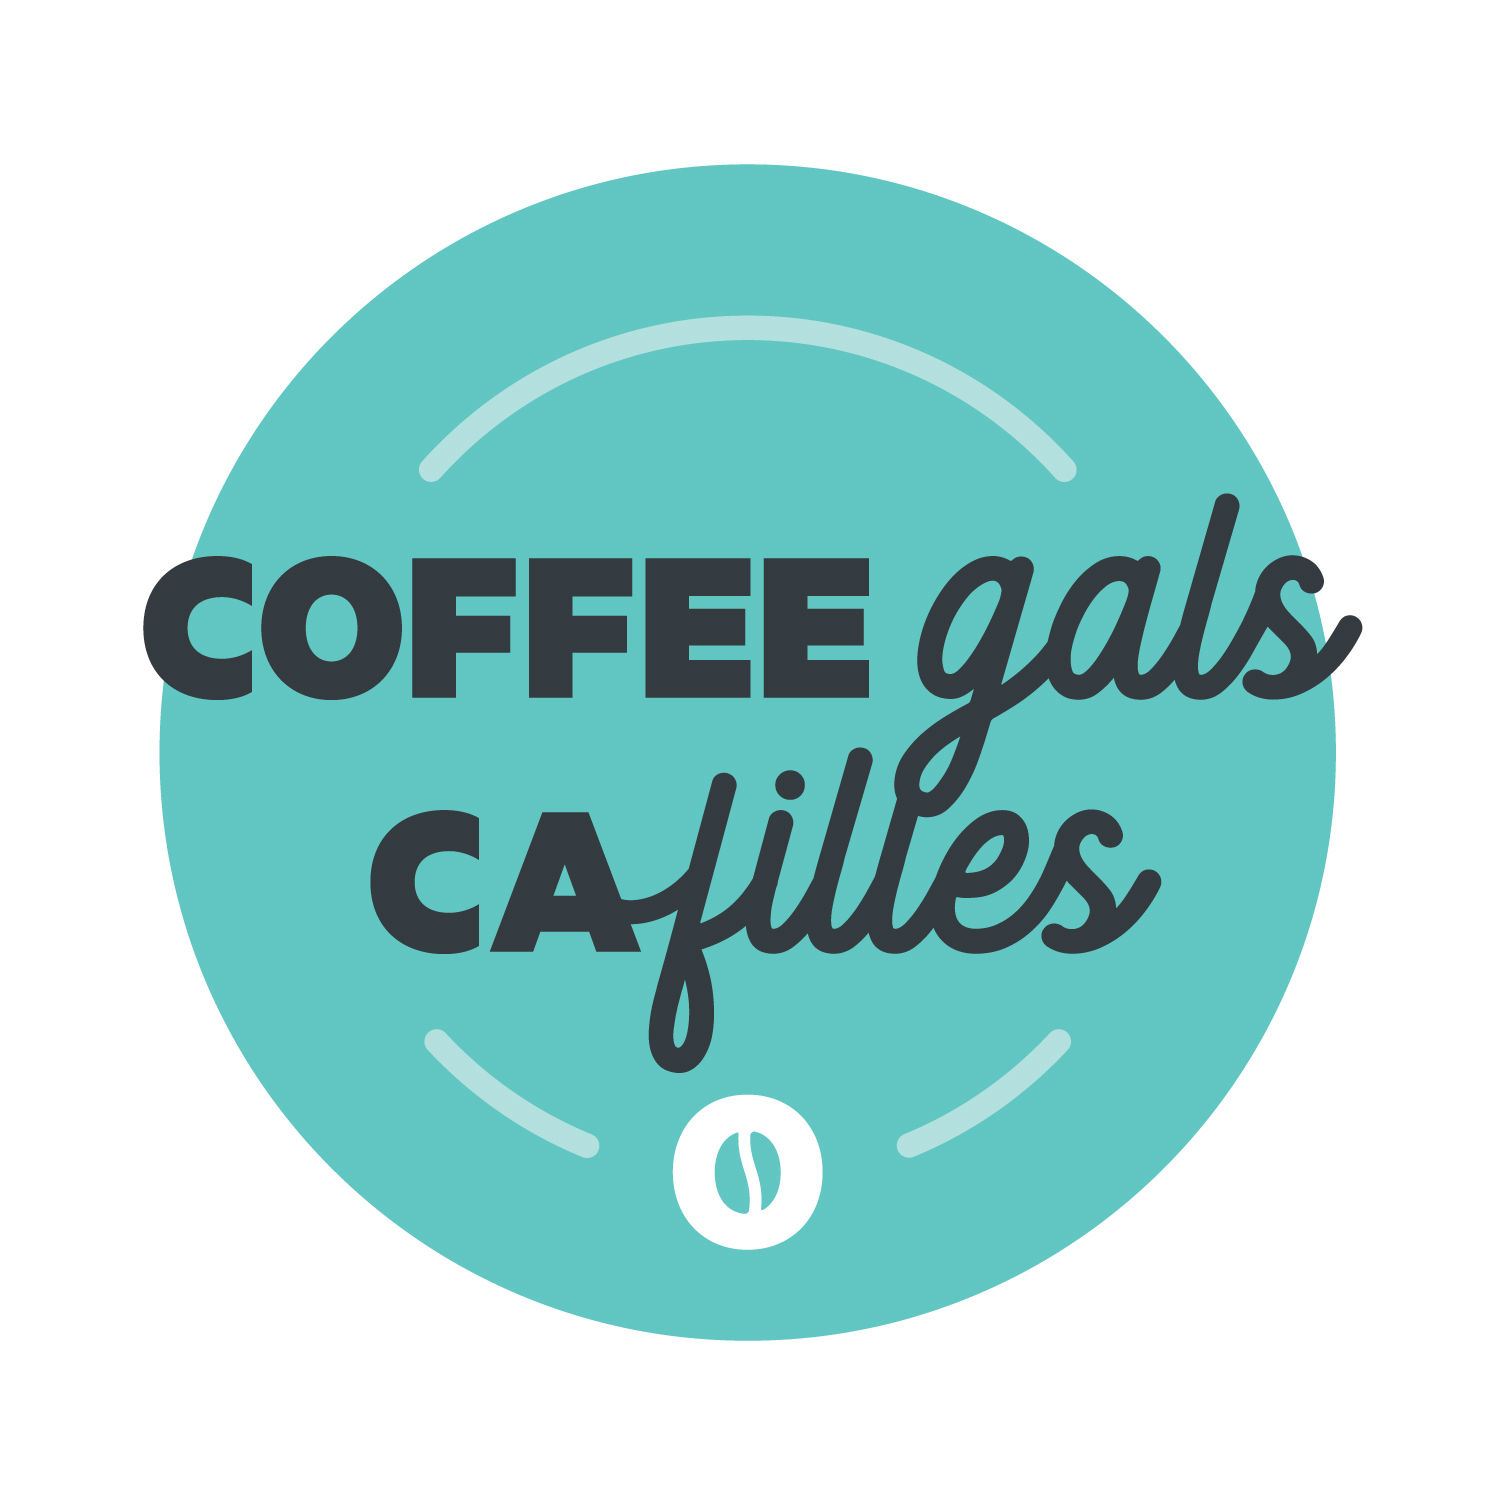 Coffee gals logo